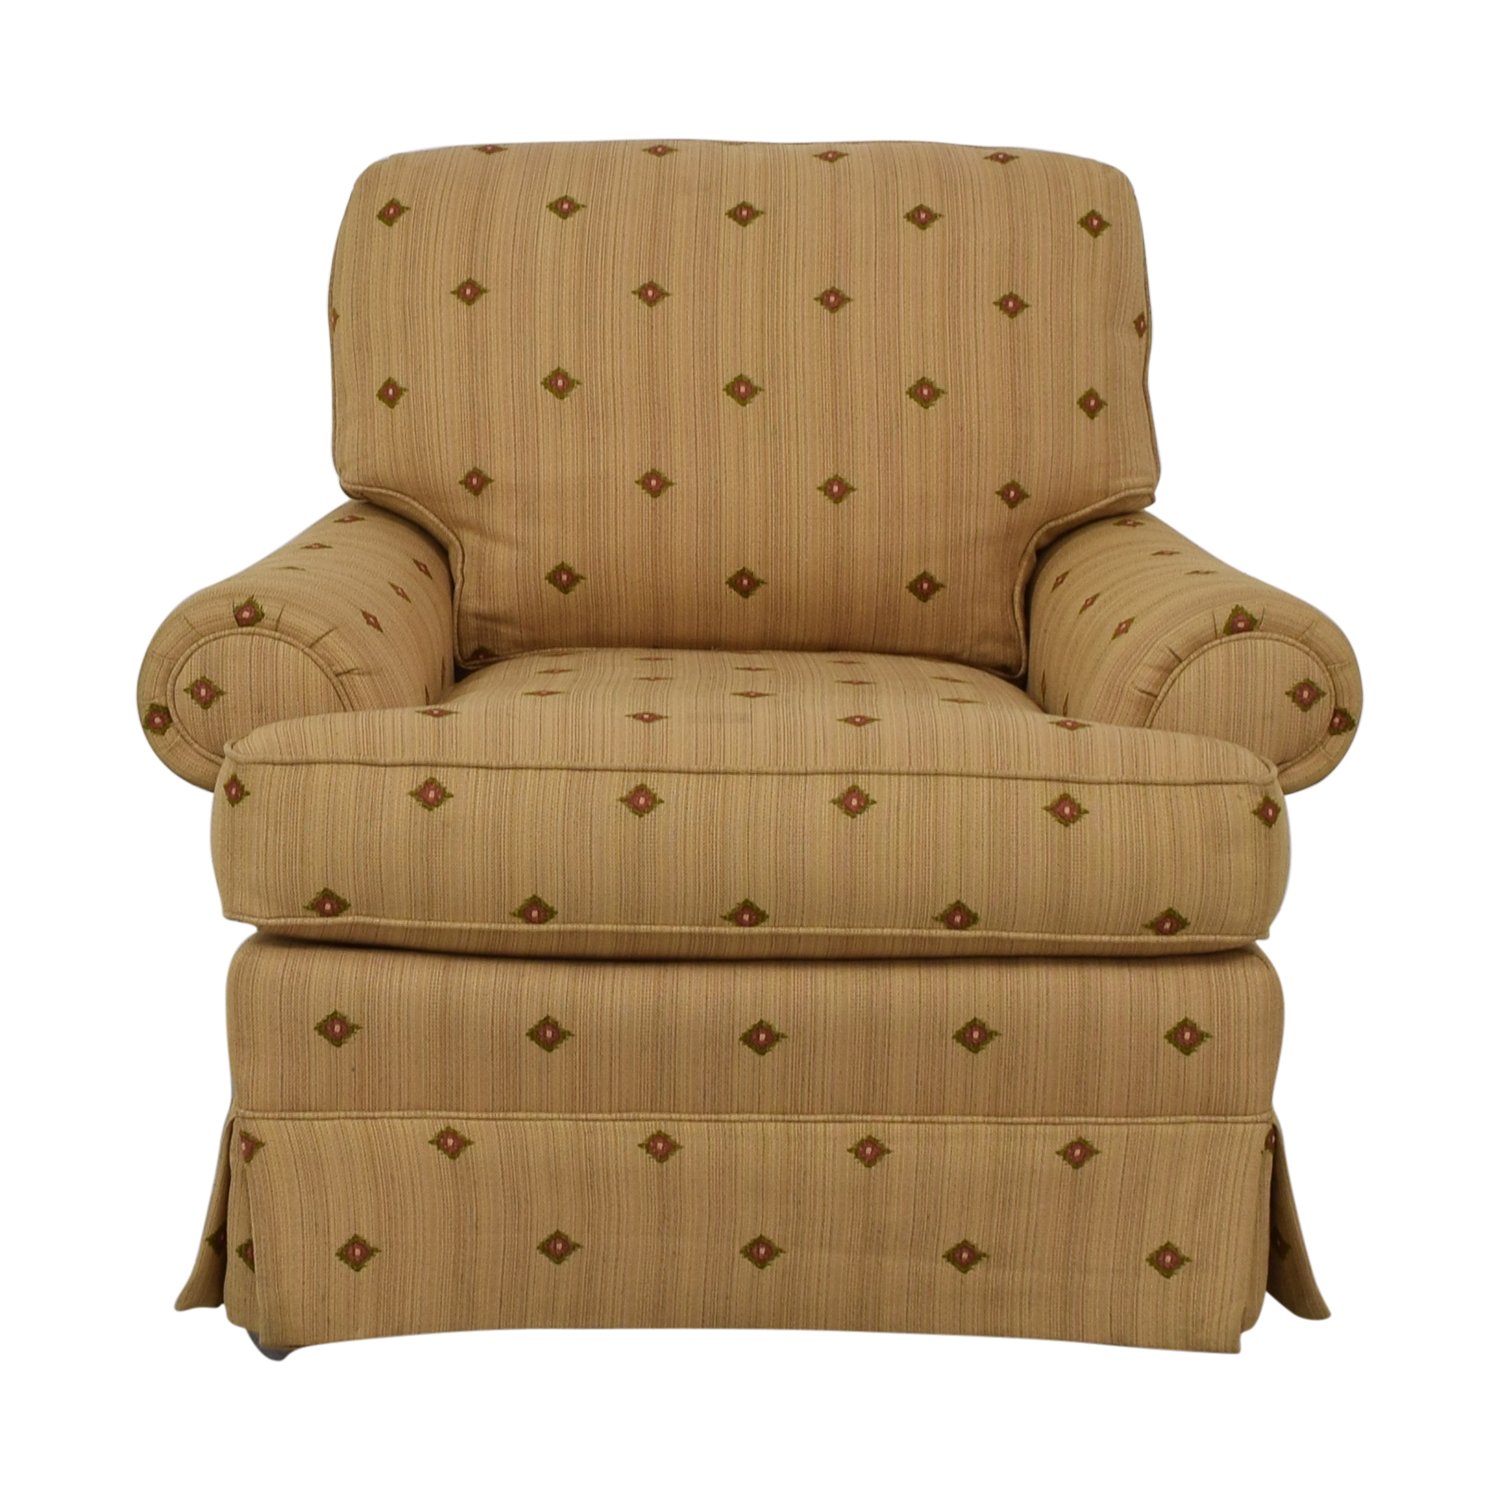 Sherrill Furniture Sherrill Furniture Accent Chair coupon